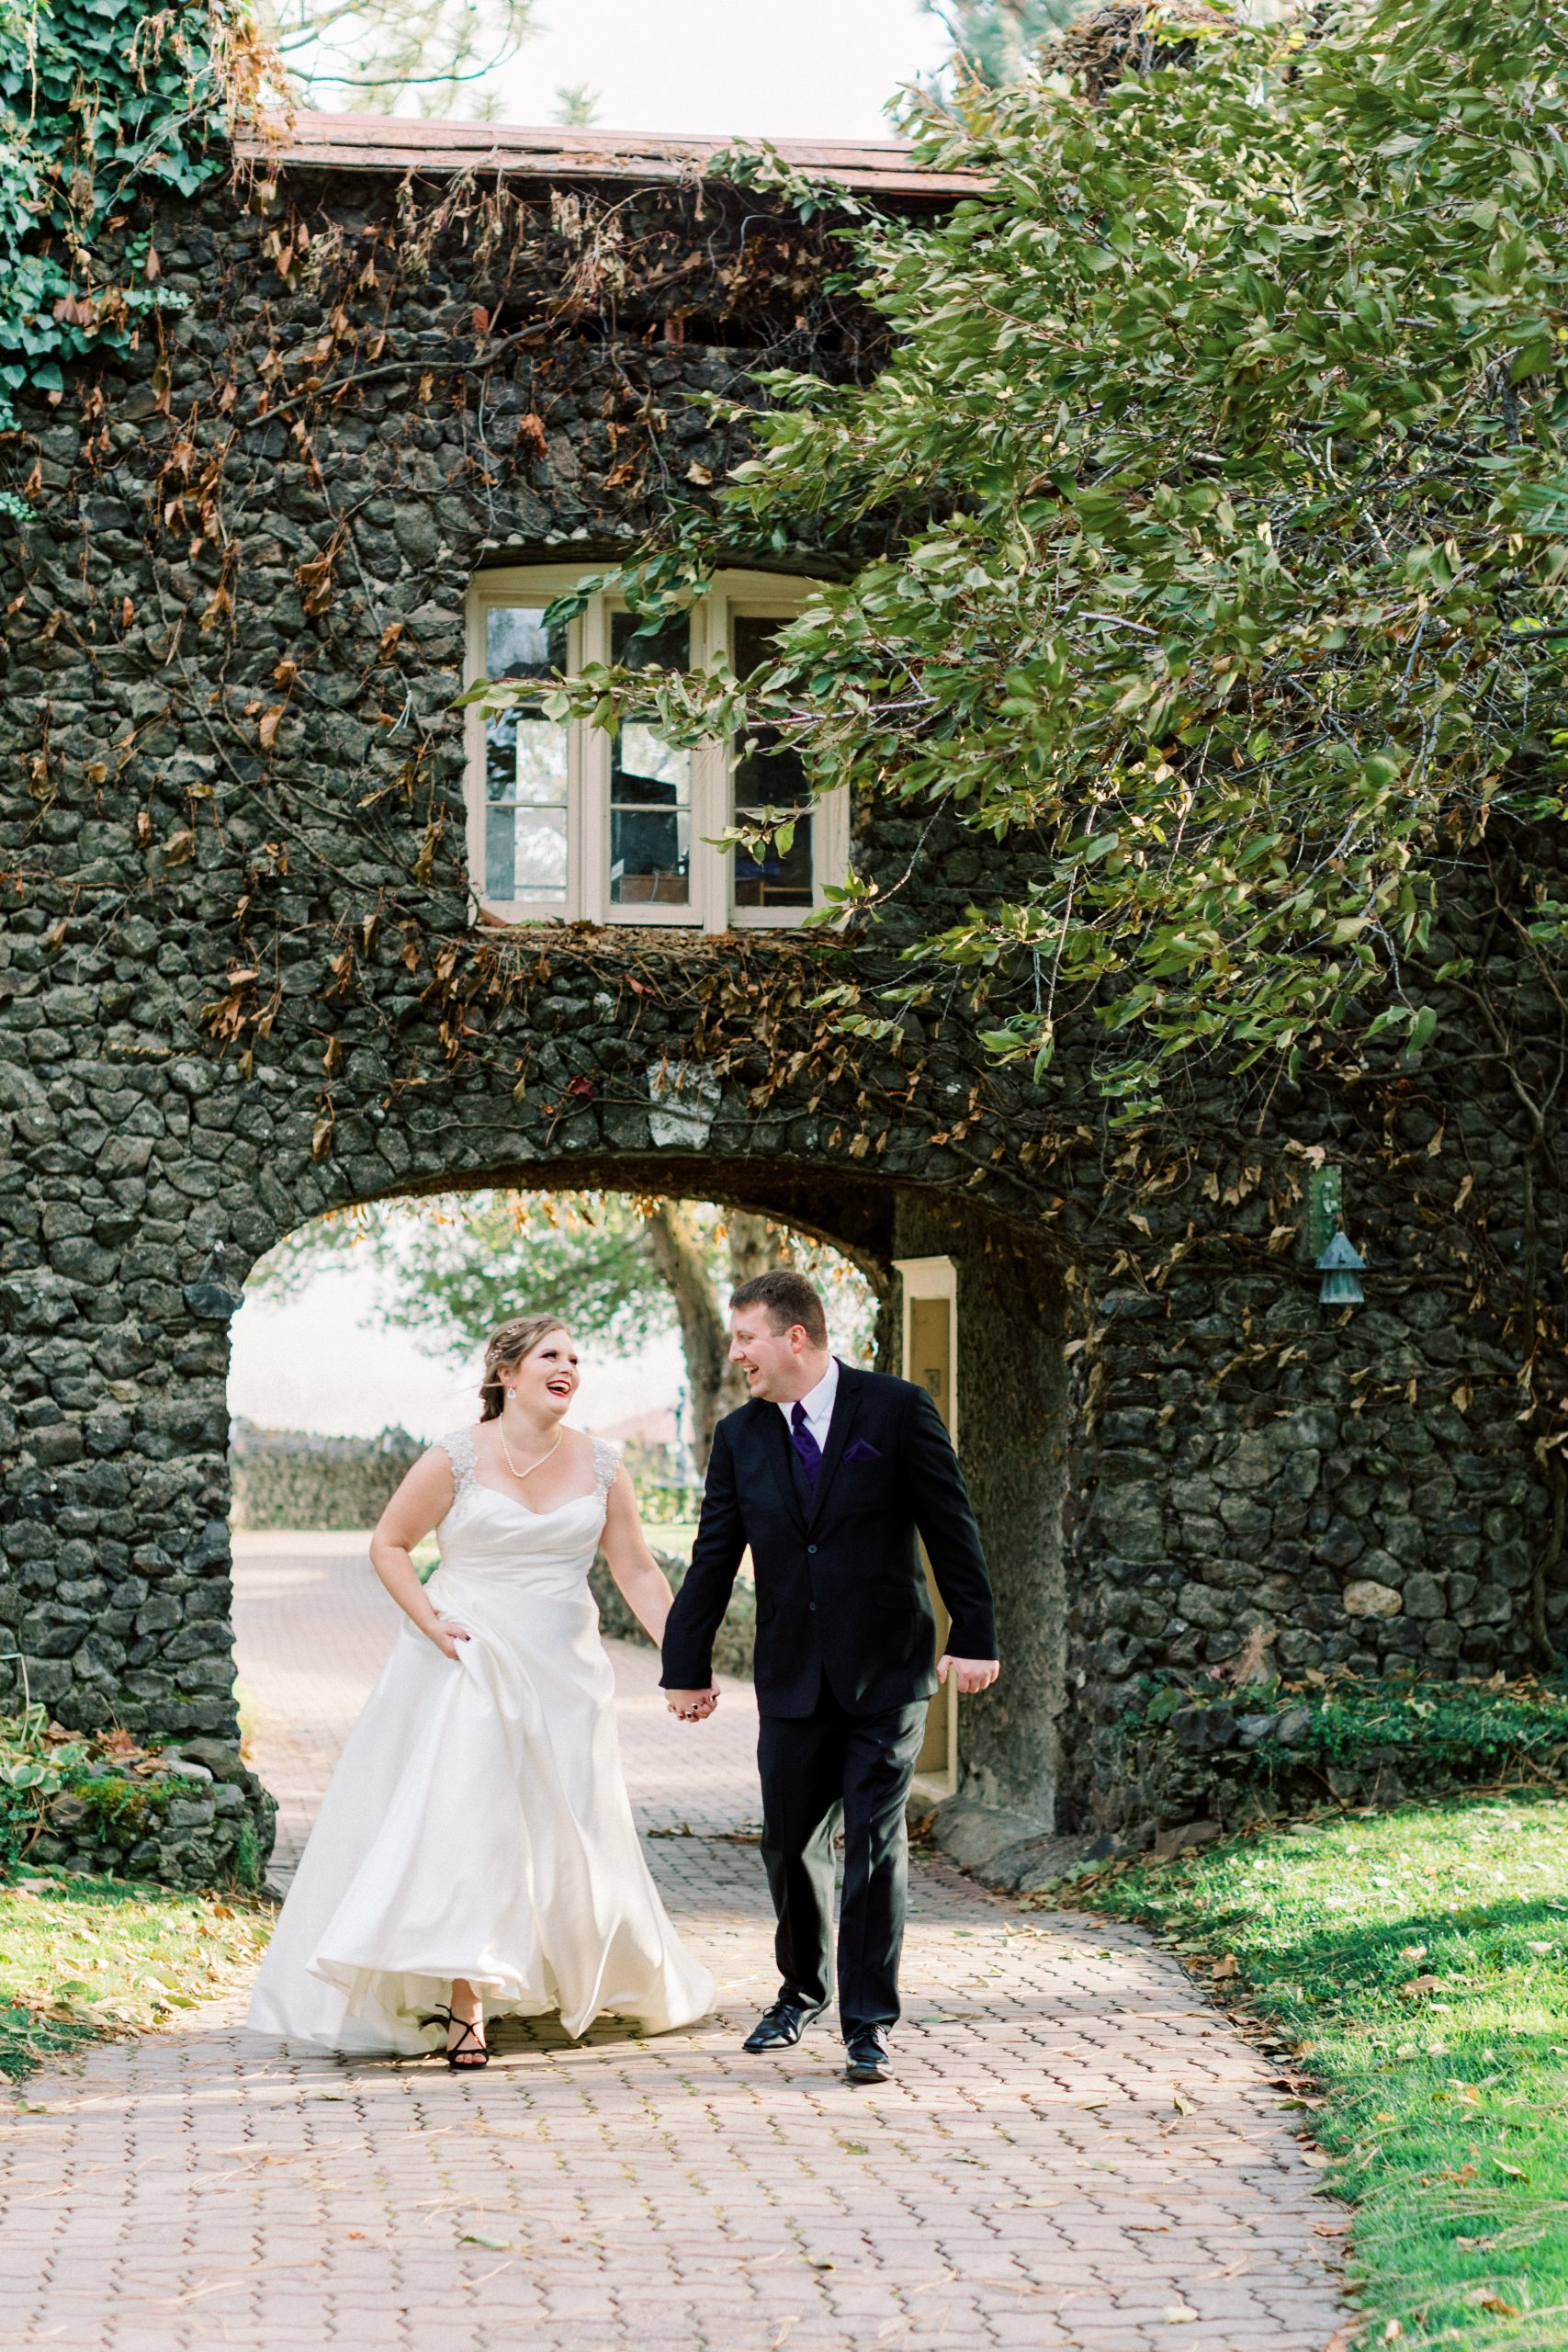 Bride and groom laughing as they walk under a beautiful stone arch at arbor crest winery in spokane captured by spokane wedding photographer rachel jordan photography